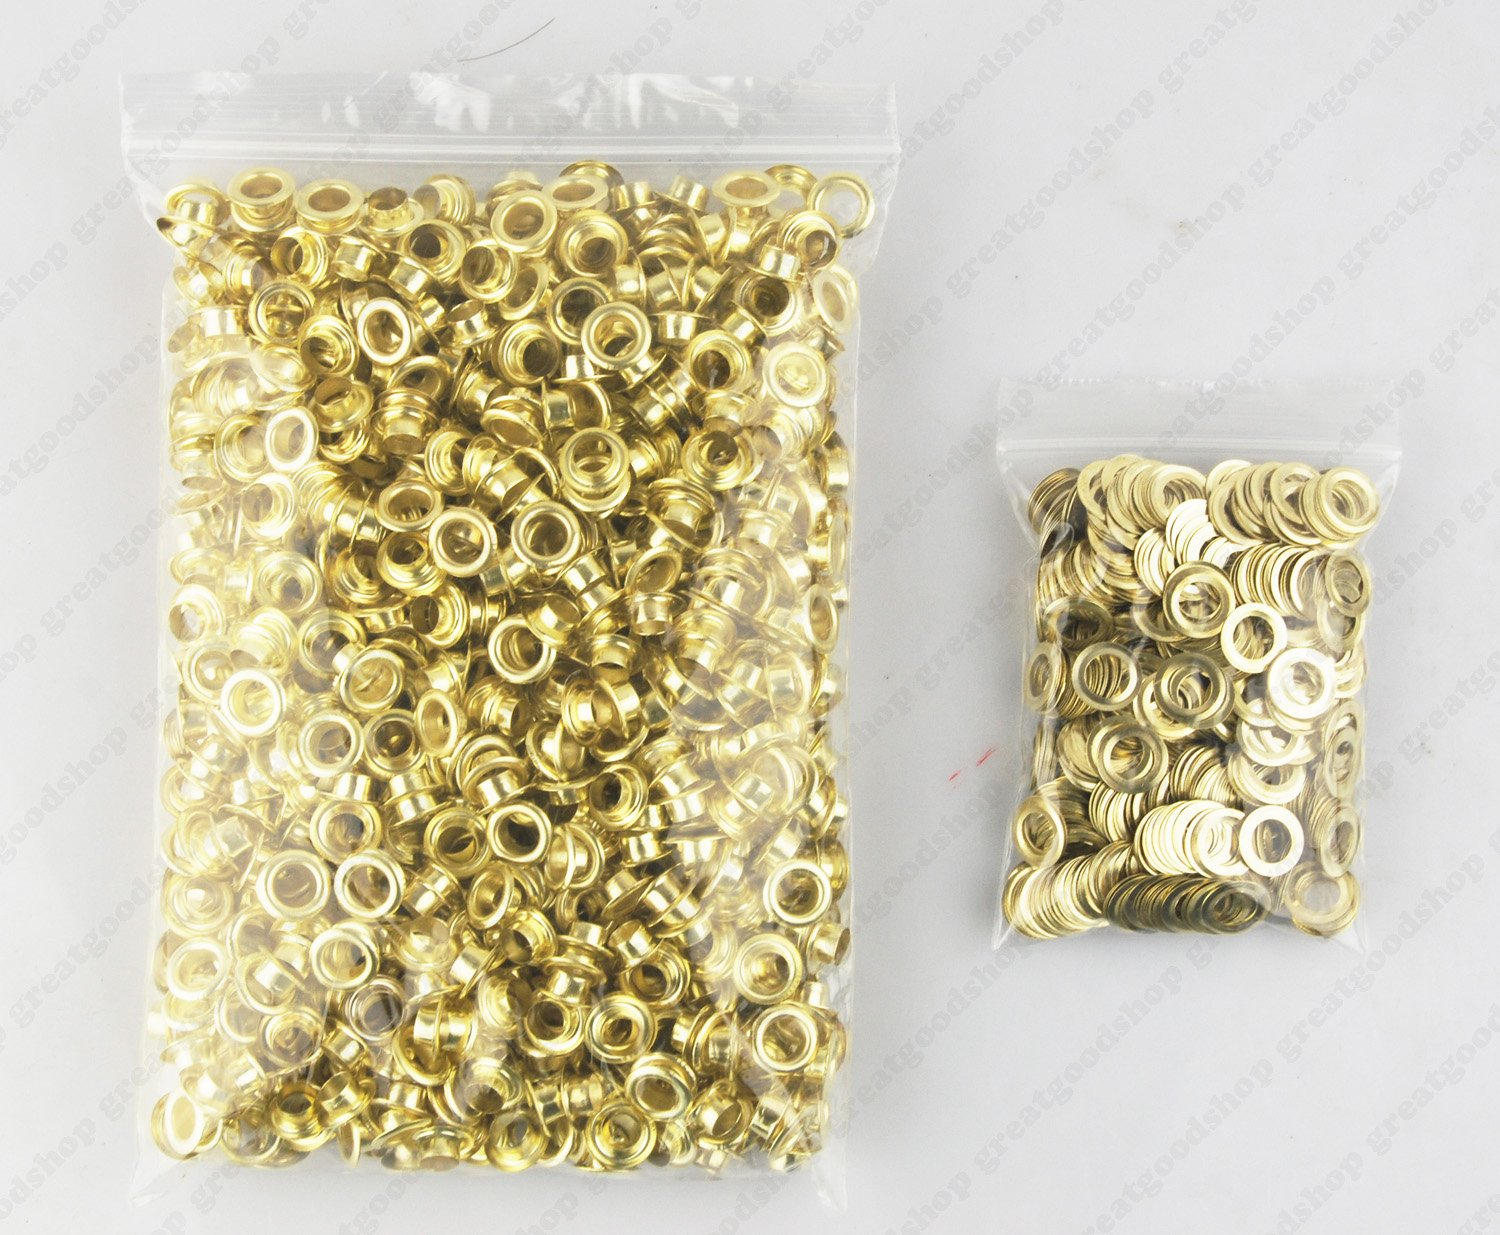 LIPOVOLT 400 PCS Plating Eyelets with Washers Clothing Grommets Scrapbook 8mm Diameter